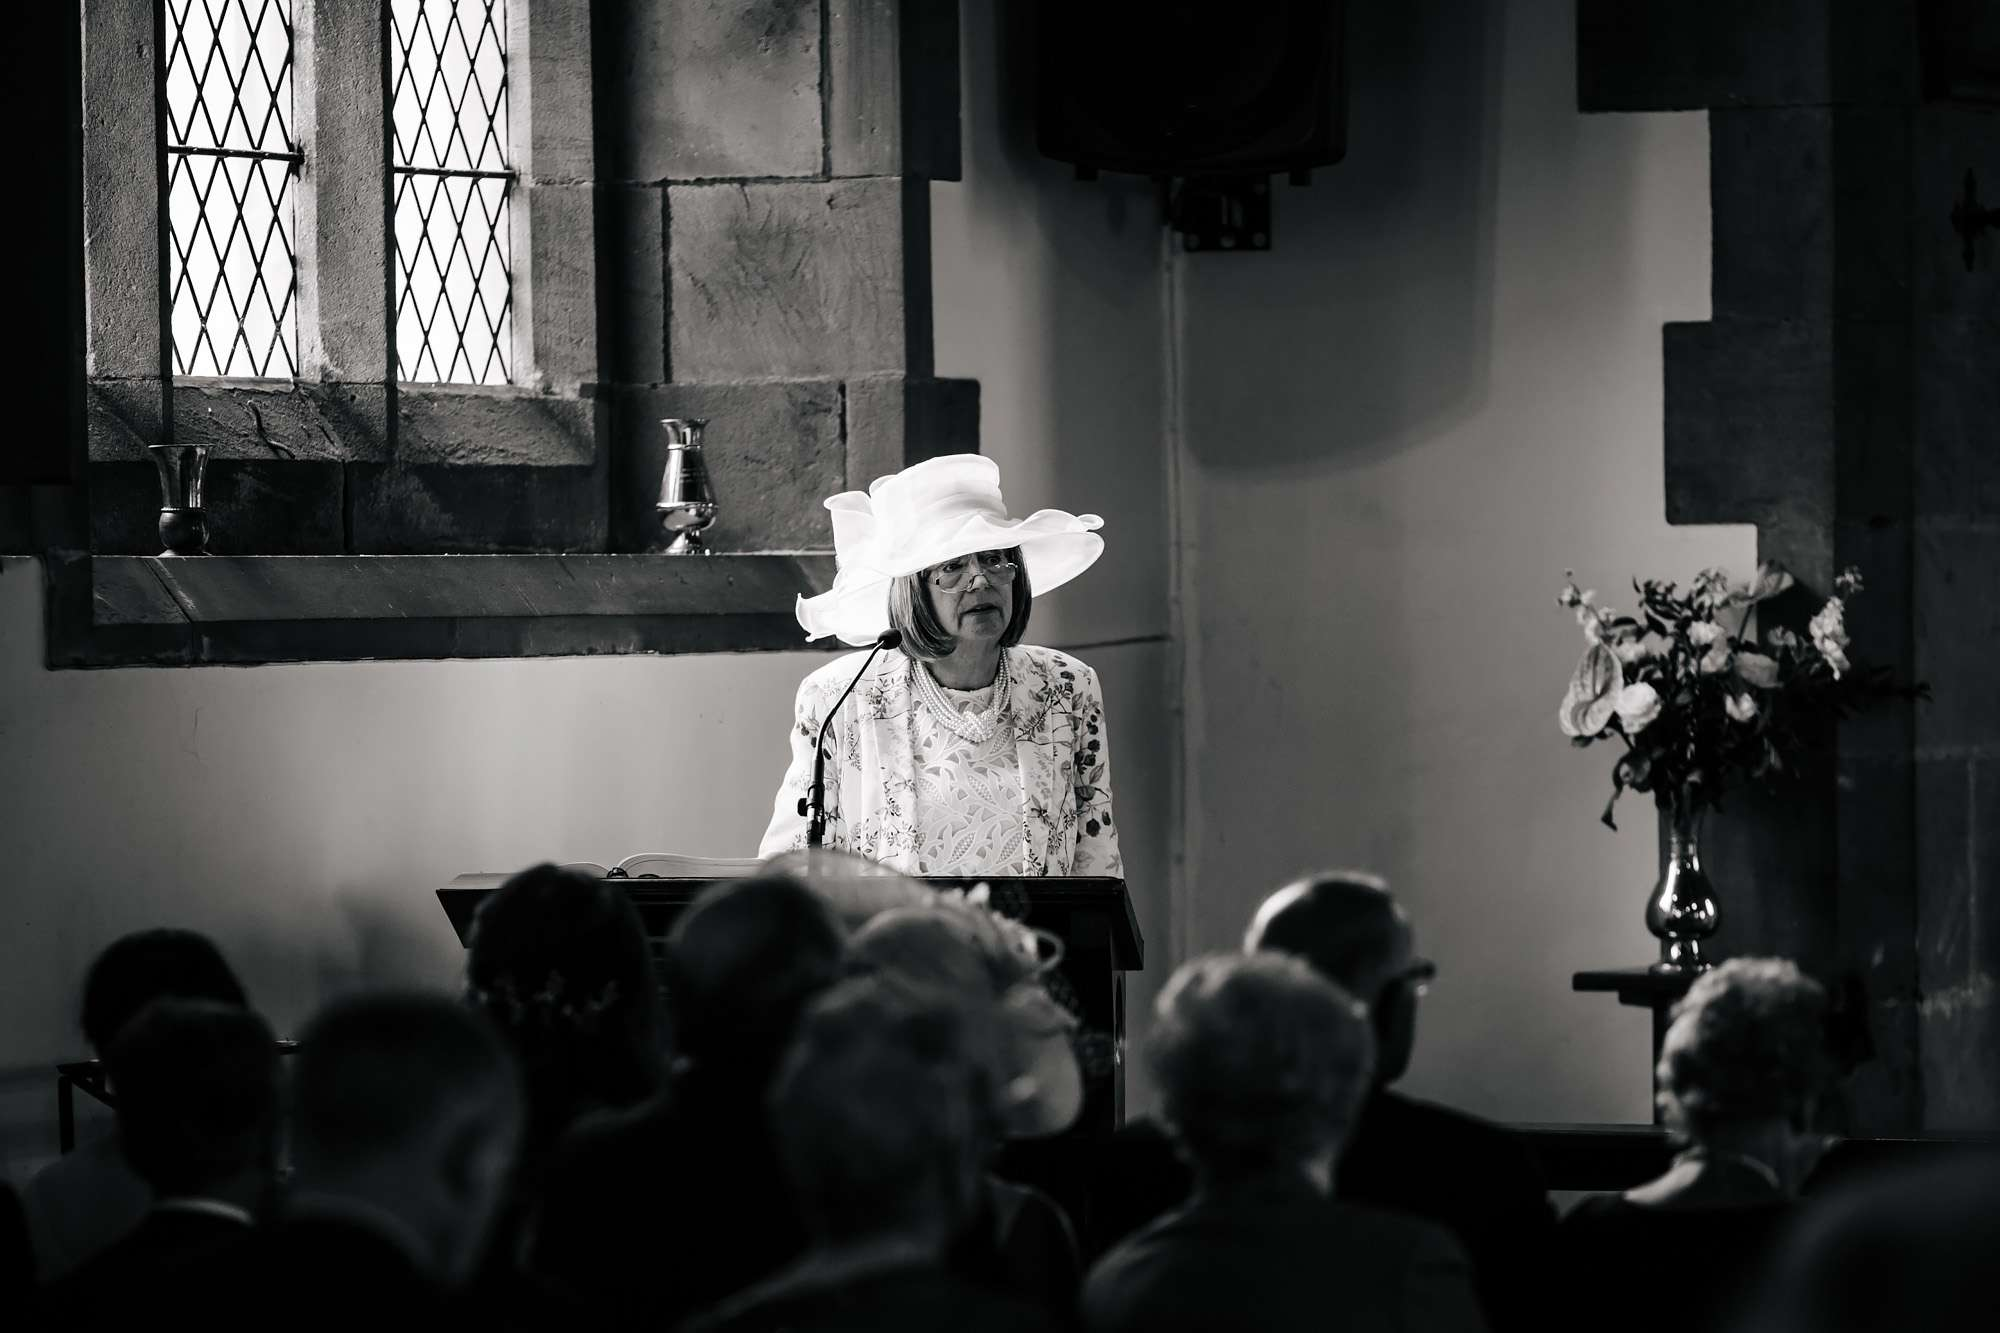 Bride's mother performs a reading in the church wedding